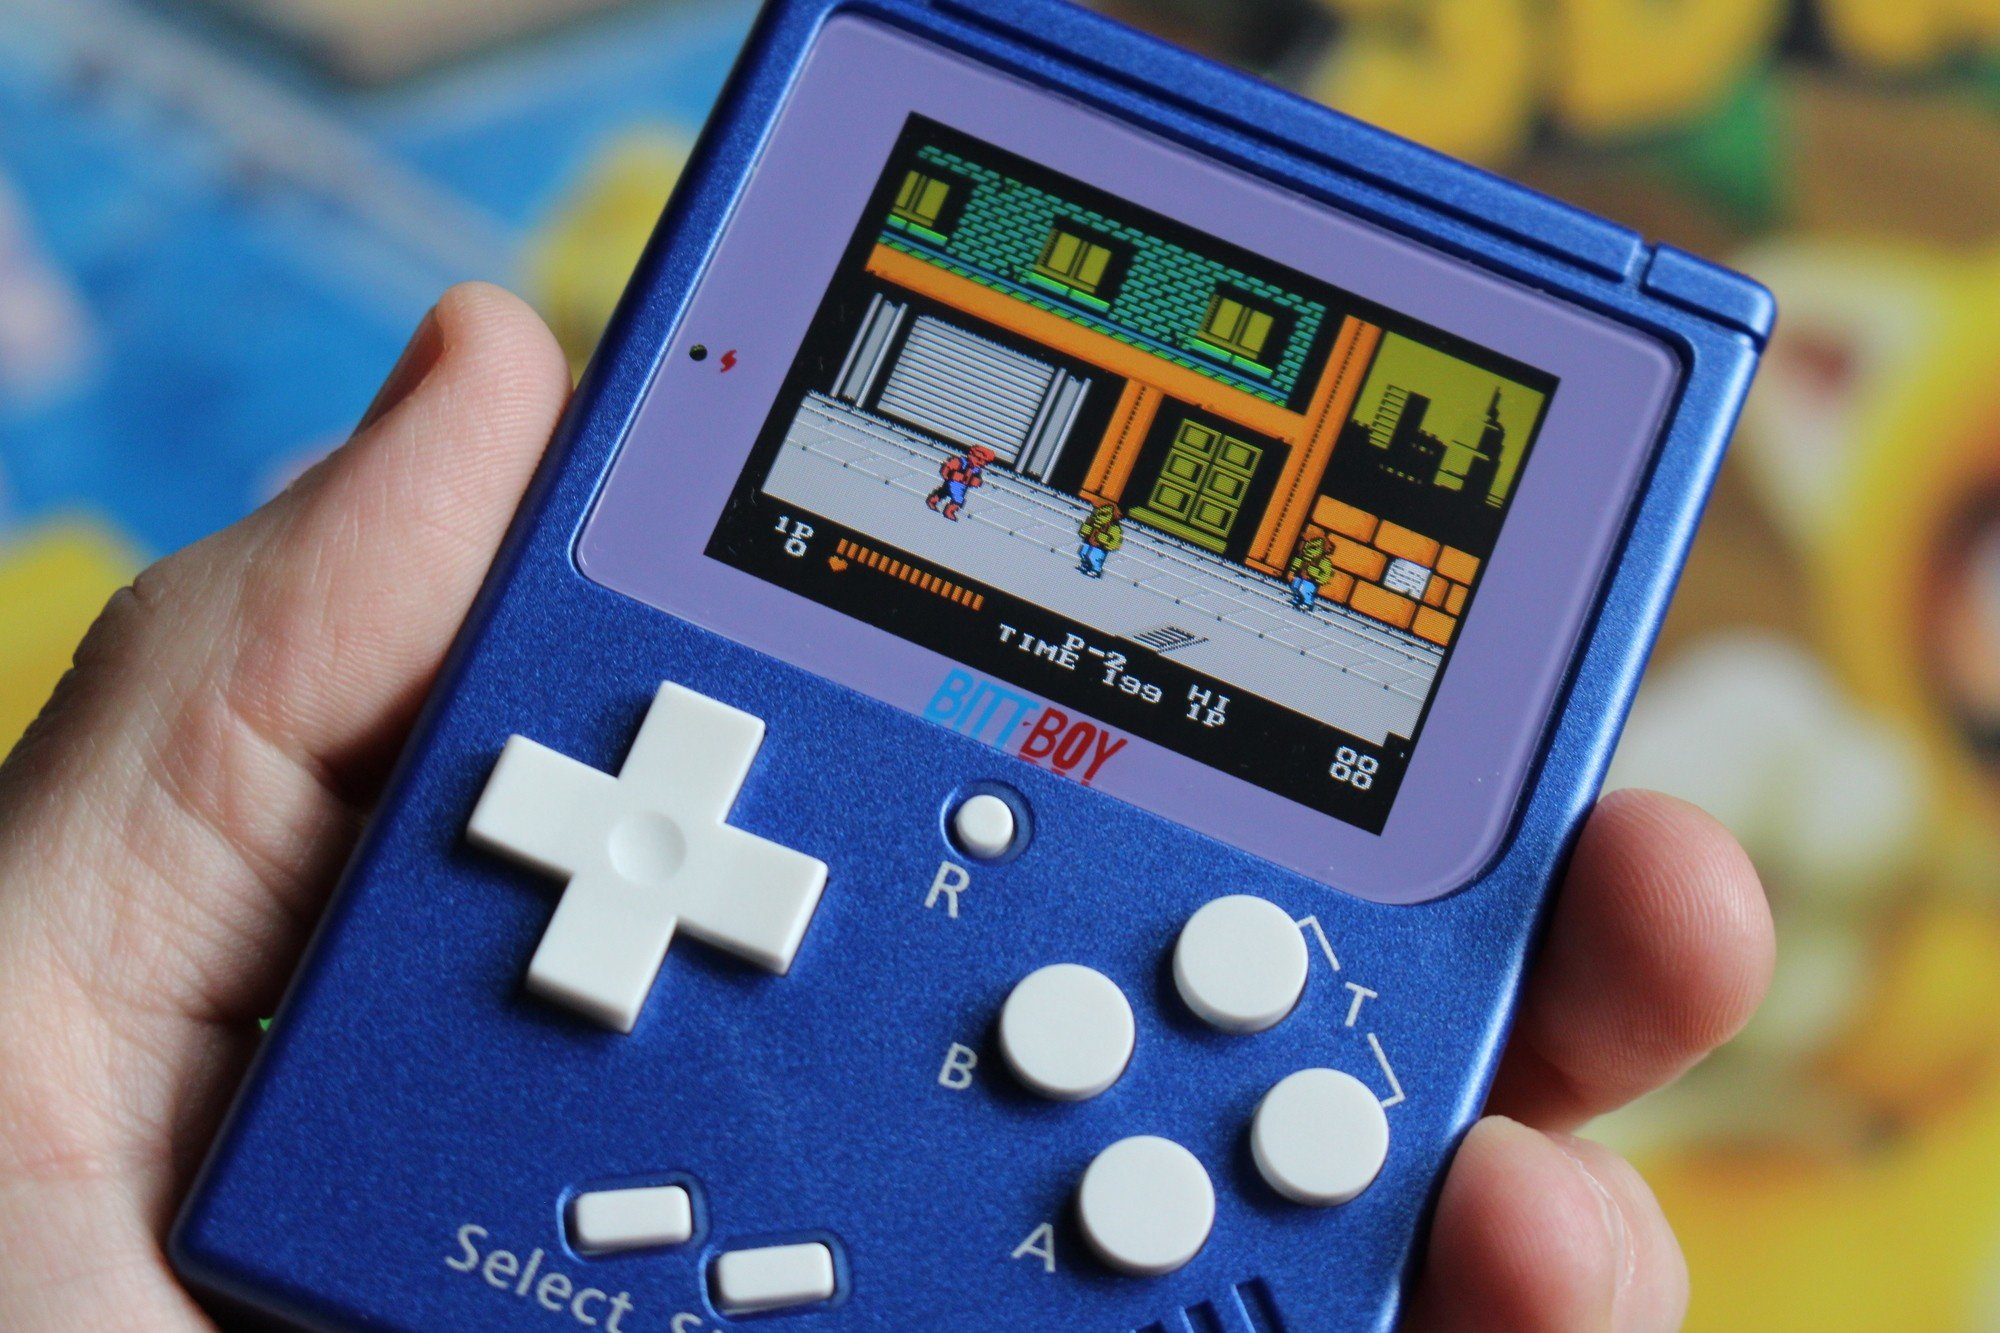 Hardware Review Bittboy Portable Video Game Handheld